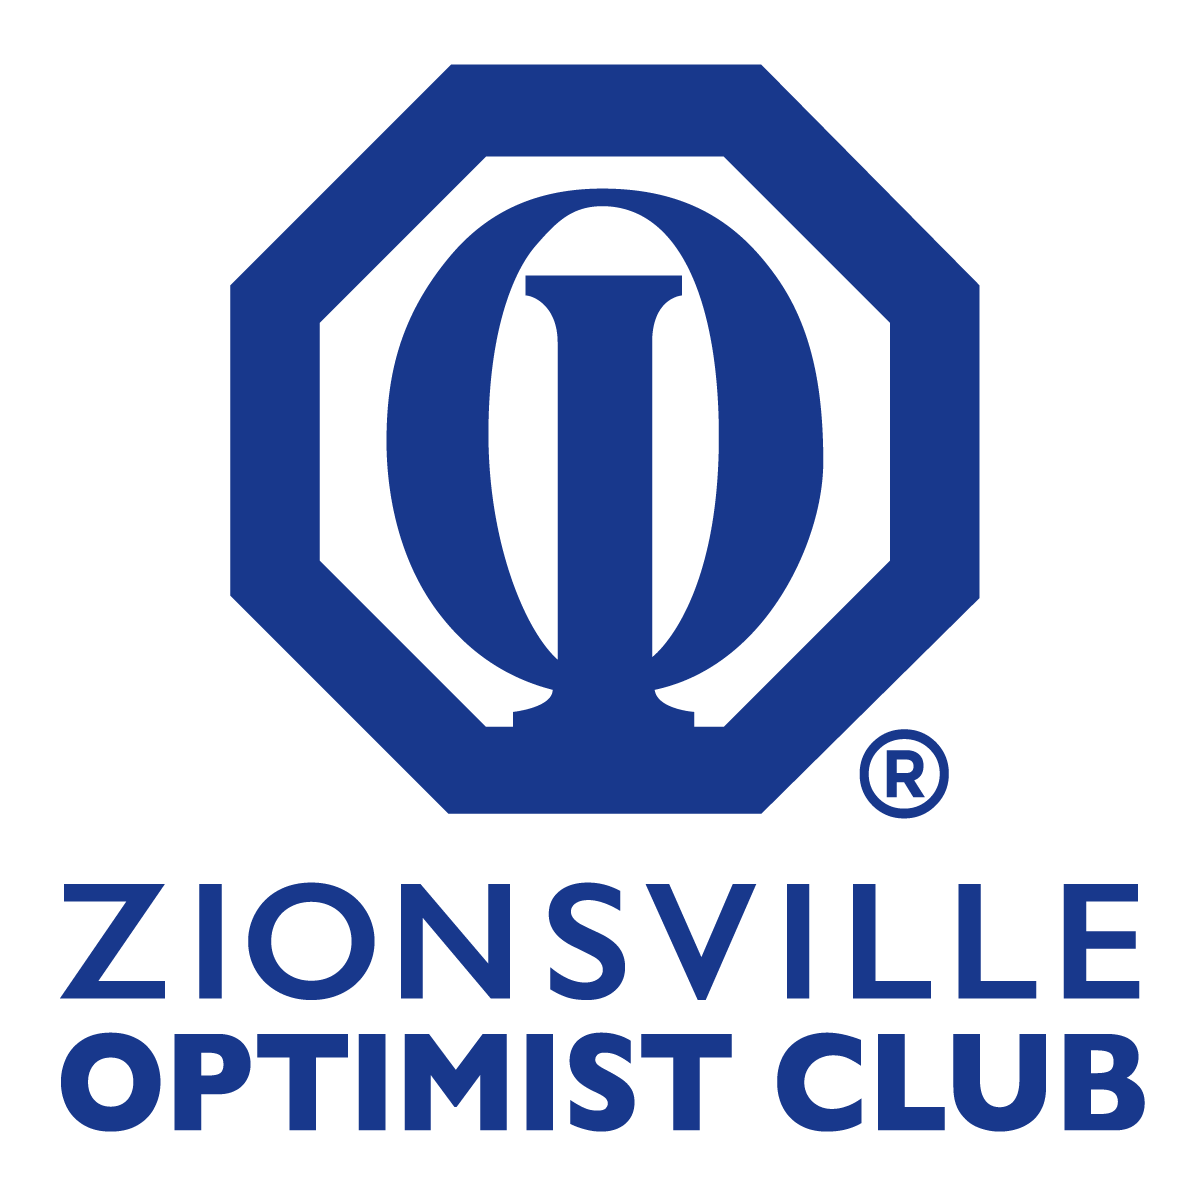 Zionsville Optimist Club